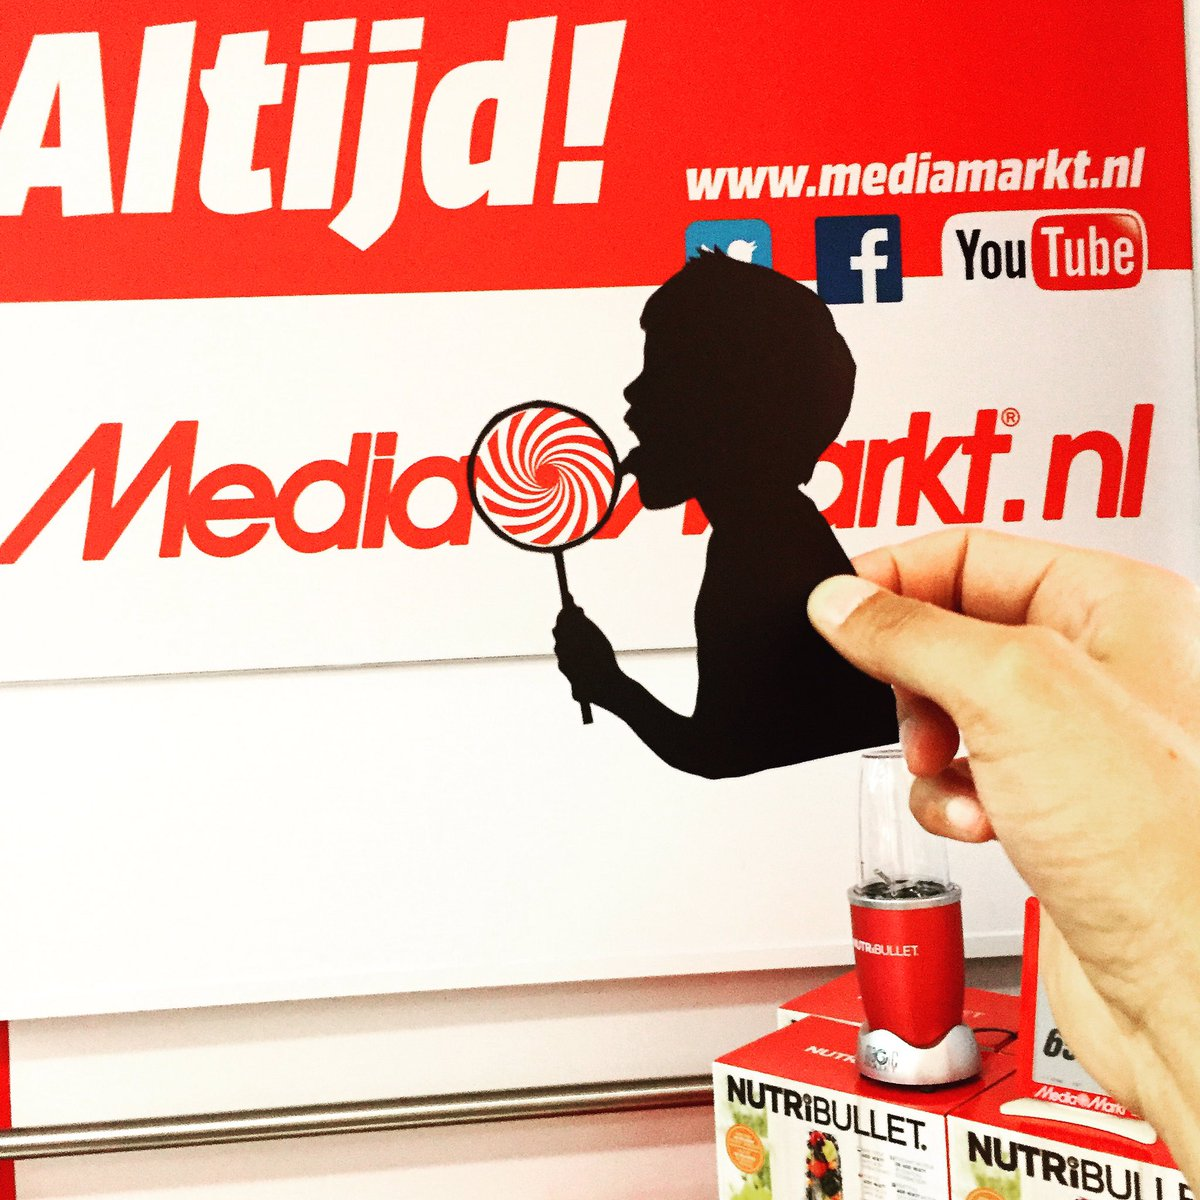 That logo-Candy is sooooo Sweet! Thank you Mediamarkt! @mediamarkt_nl #mediamarkt @mediamarktaadr #papercut #lolly #lollies #candy https://t.co/rzVL6jeA9A